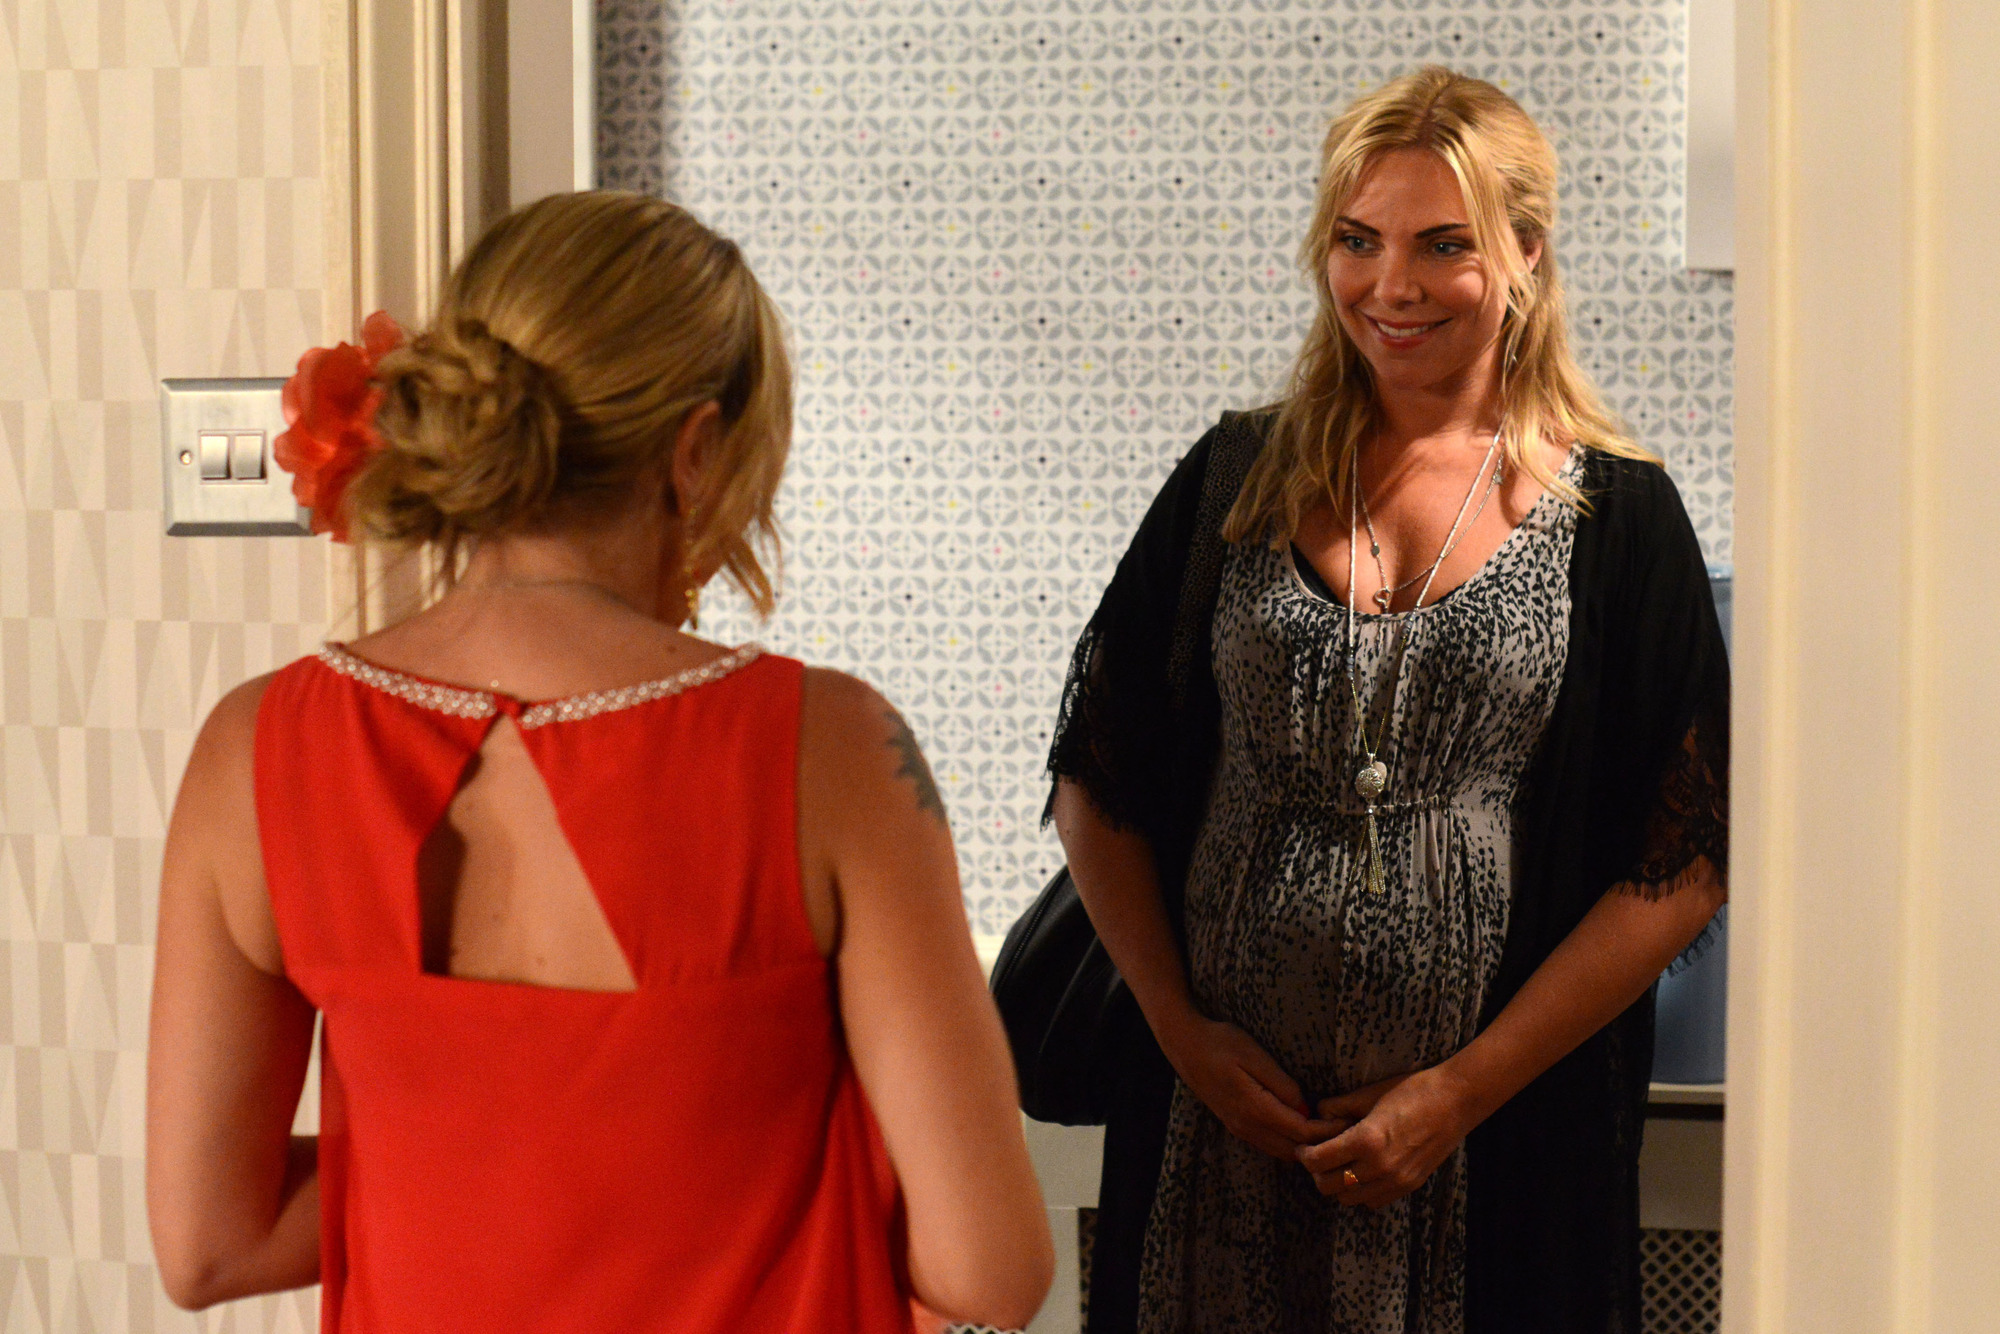 EastEnders: How will Ronnie Mitchell's arrival affect Walford?